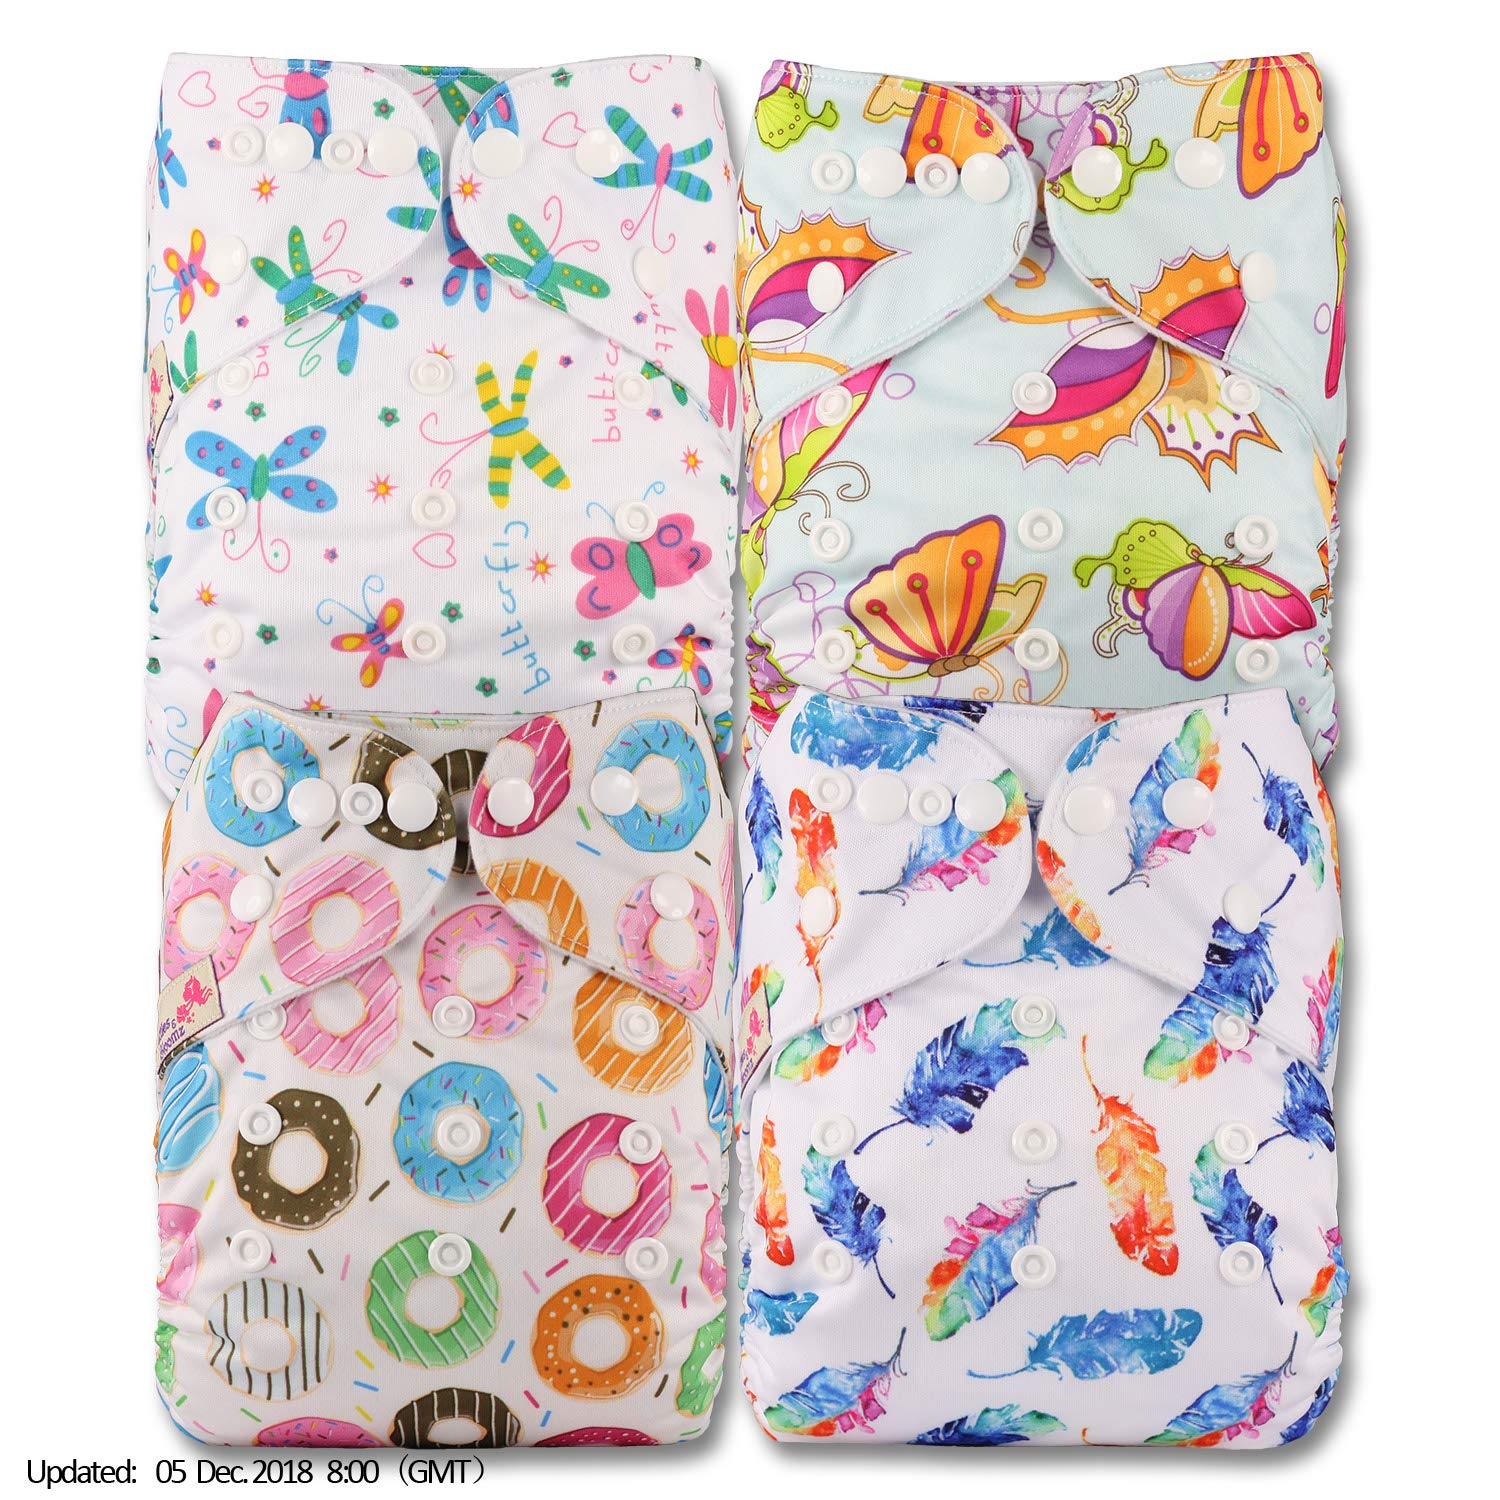 Patterns 404 Fastener: Popper with 4 Bamboo Charcoal Inserts Littles /& Bloomz Reusable Pocket Cloth Nappy Set of 4